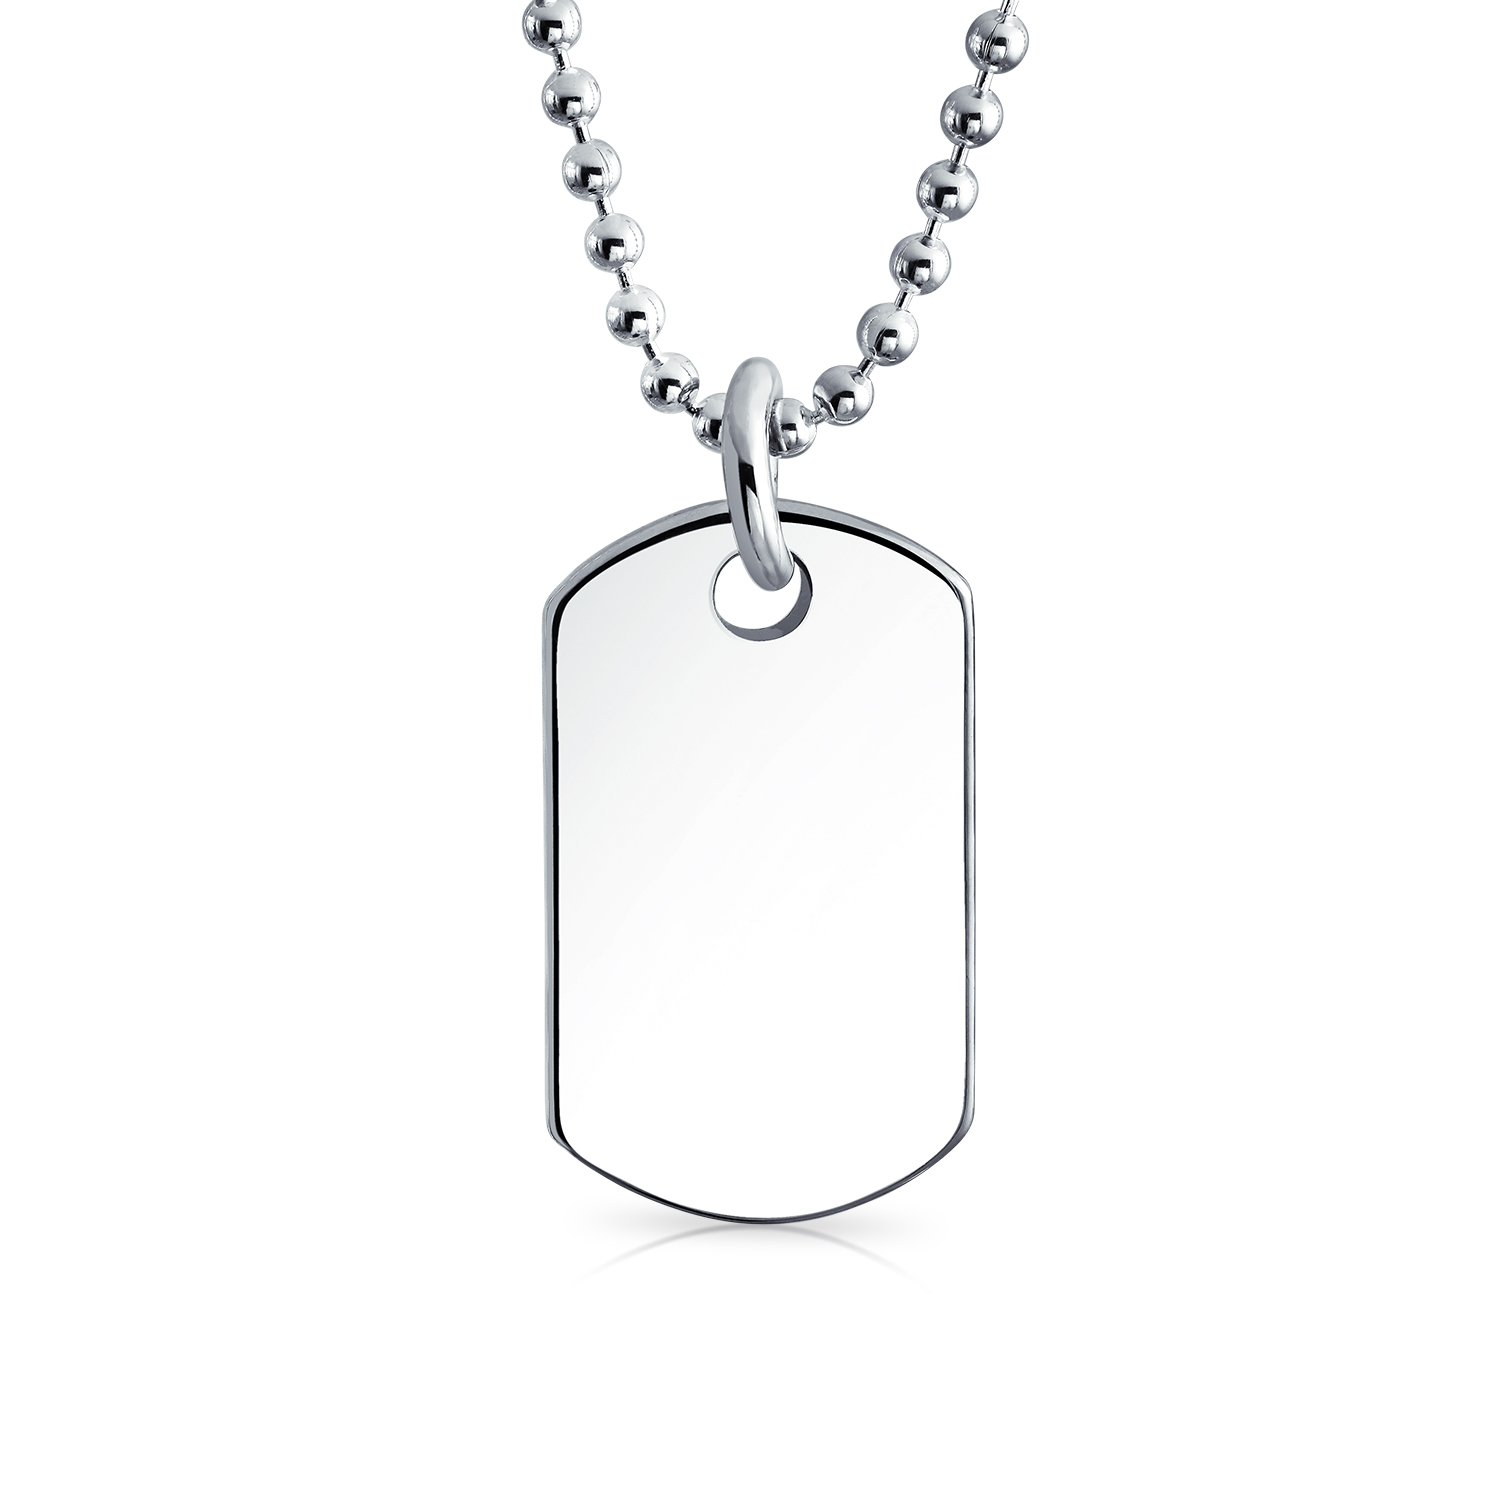 Childrens Petite Dog Tag Pendant Sterling Silver Necklace 16 Inches